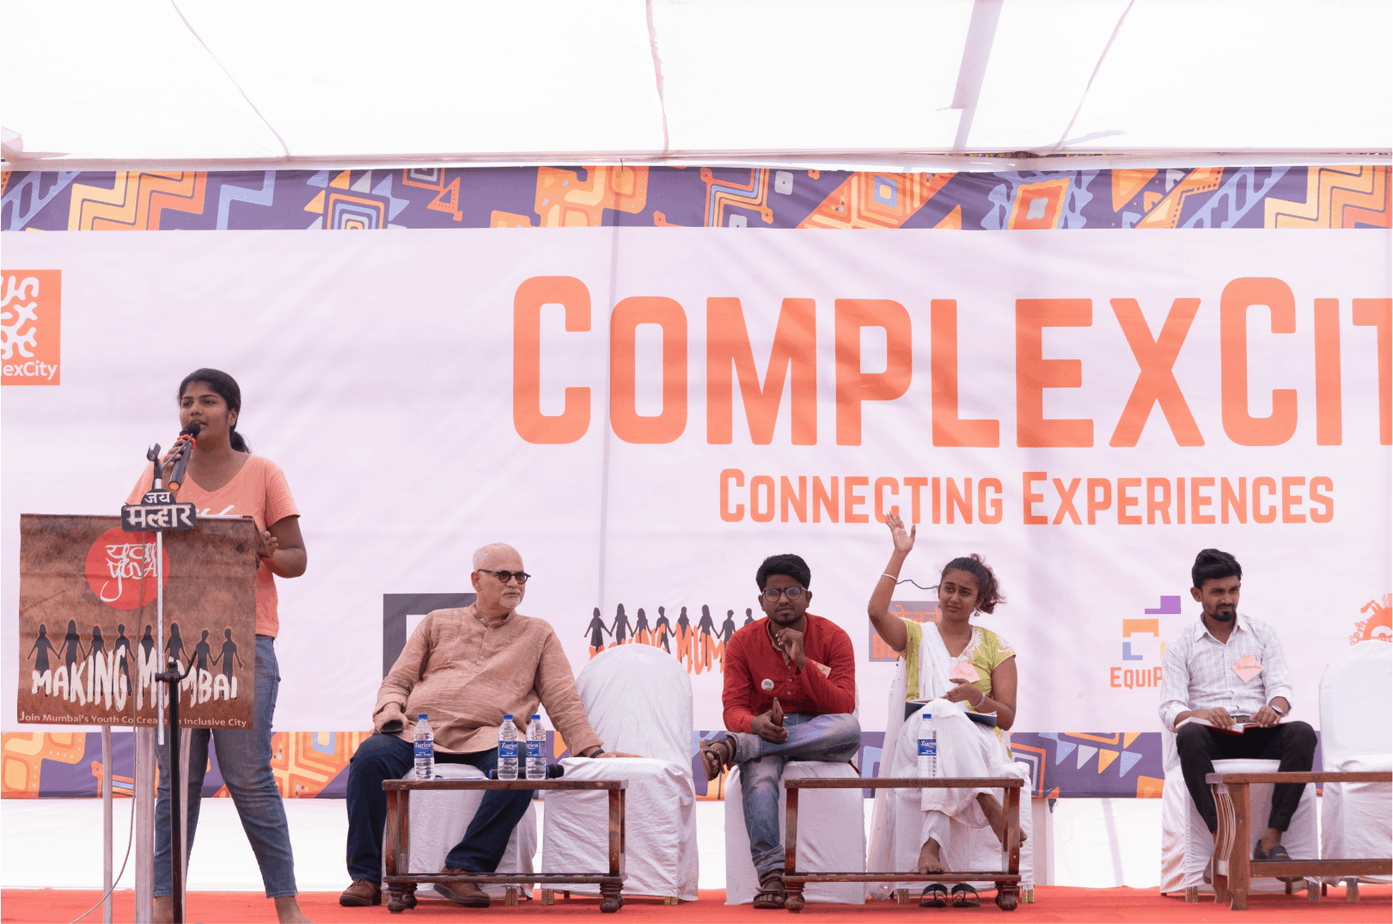 Youth lead discussions at ComplexCity's Making Mumbai youth event. Pic: Vivek Venkatraman